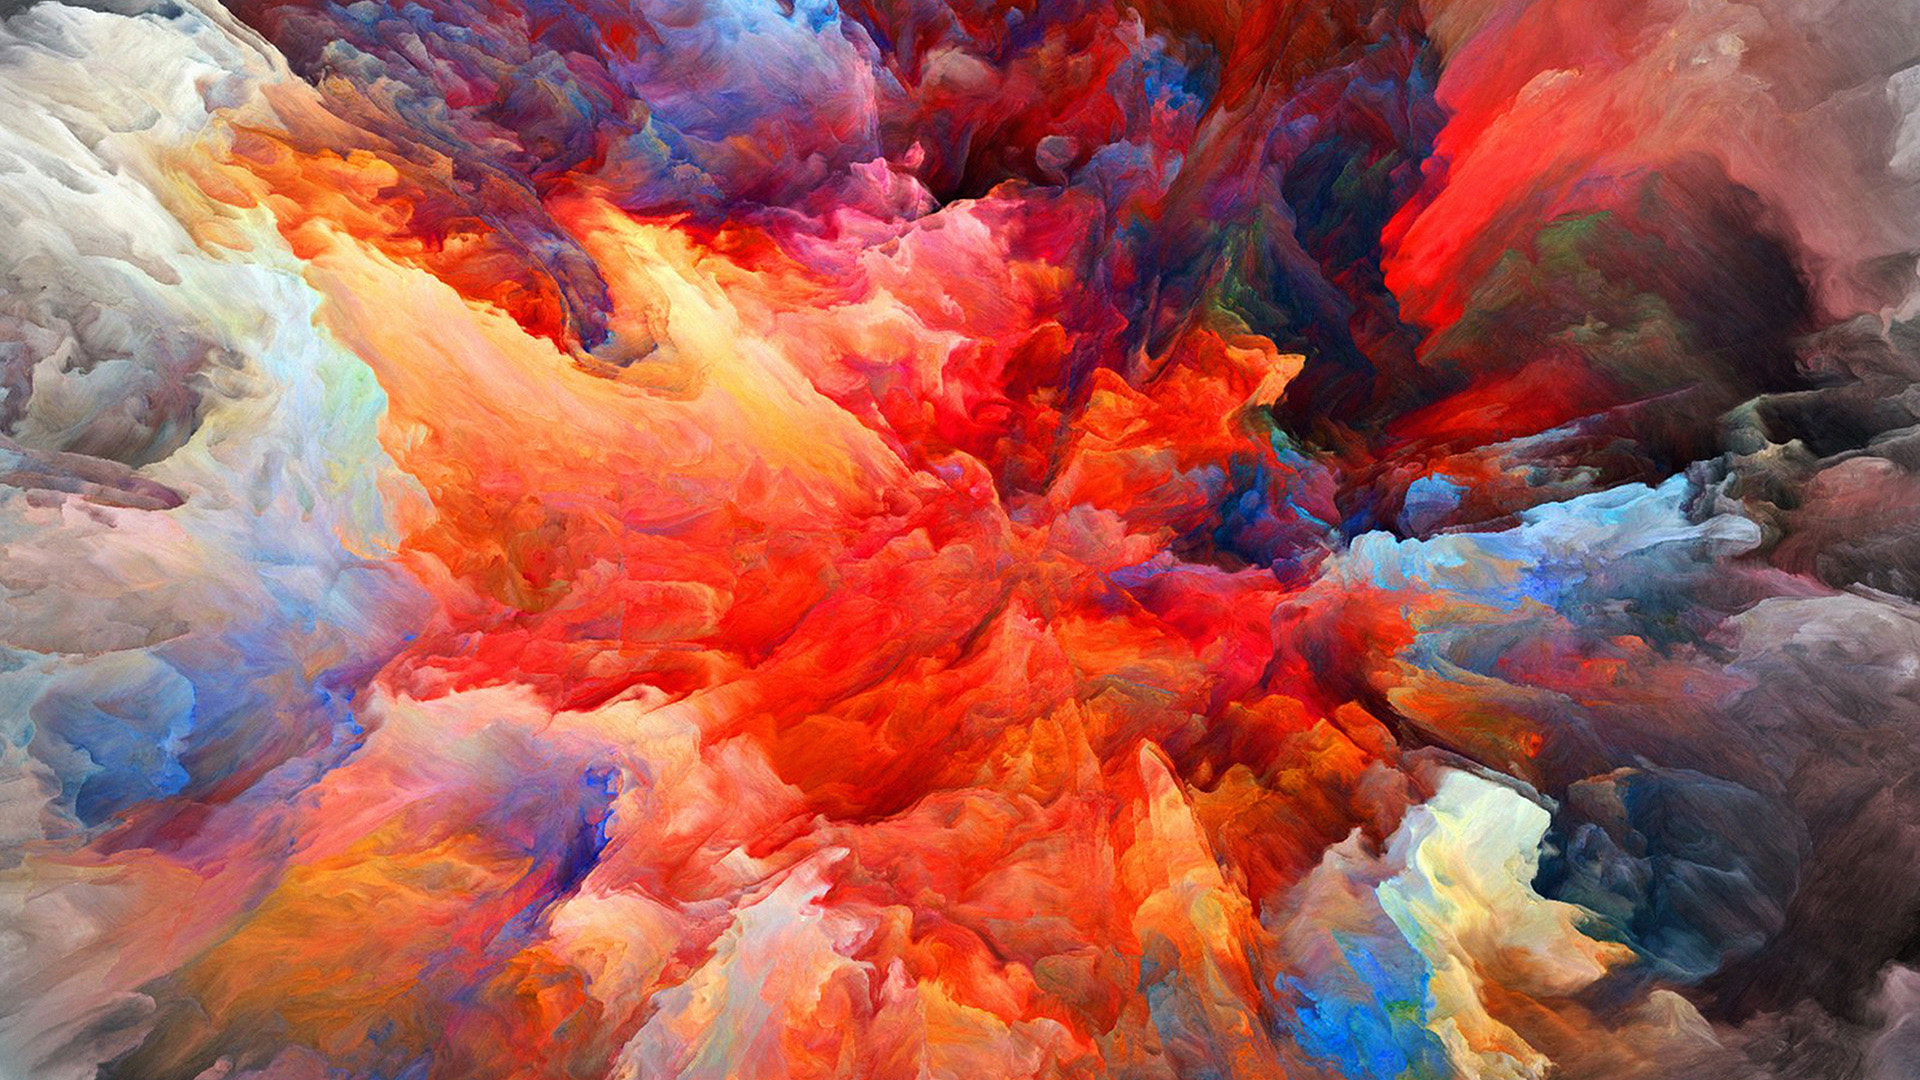 Wallpapers For Desktop Fall Colors Vq21 Color Explosion Red Paint Pattern Wallpaper